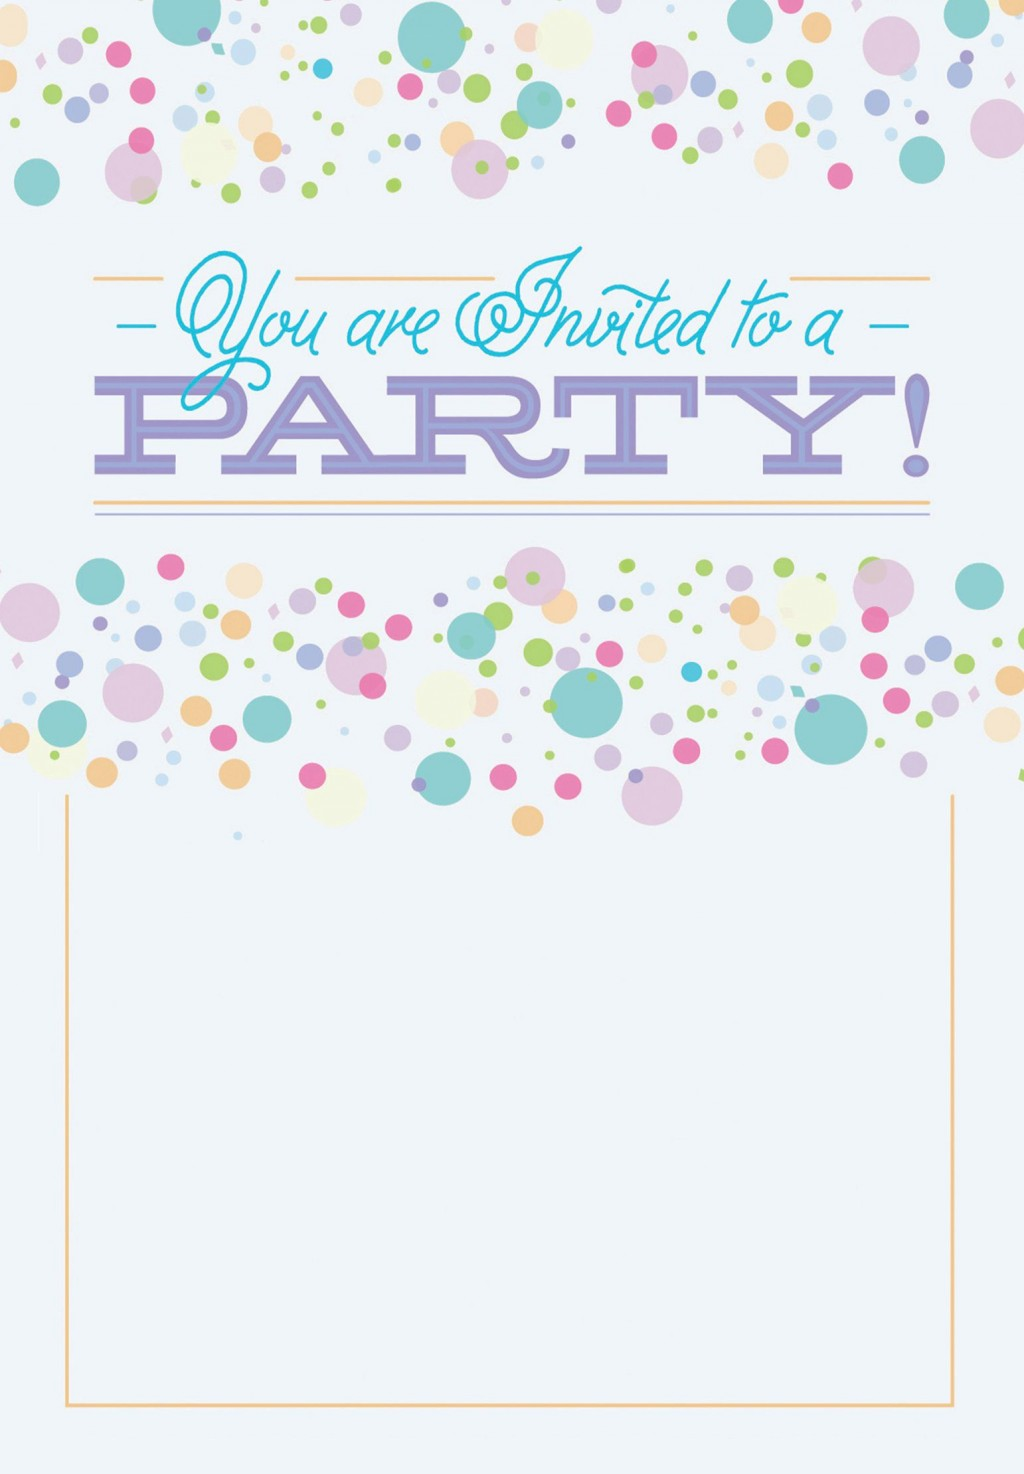 007 Wondrou Party Invite Template Free Example  Ugly Sweater Invitation Word Christma Printable Swimming UkLarge